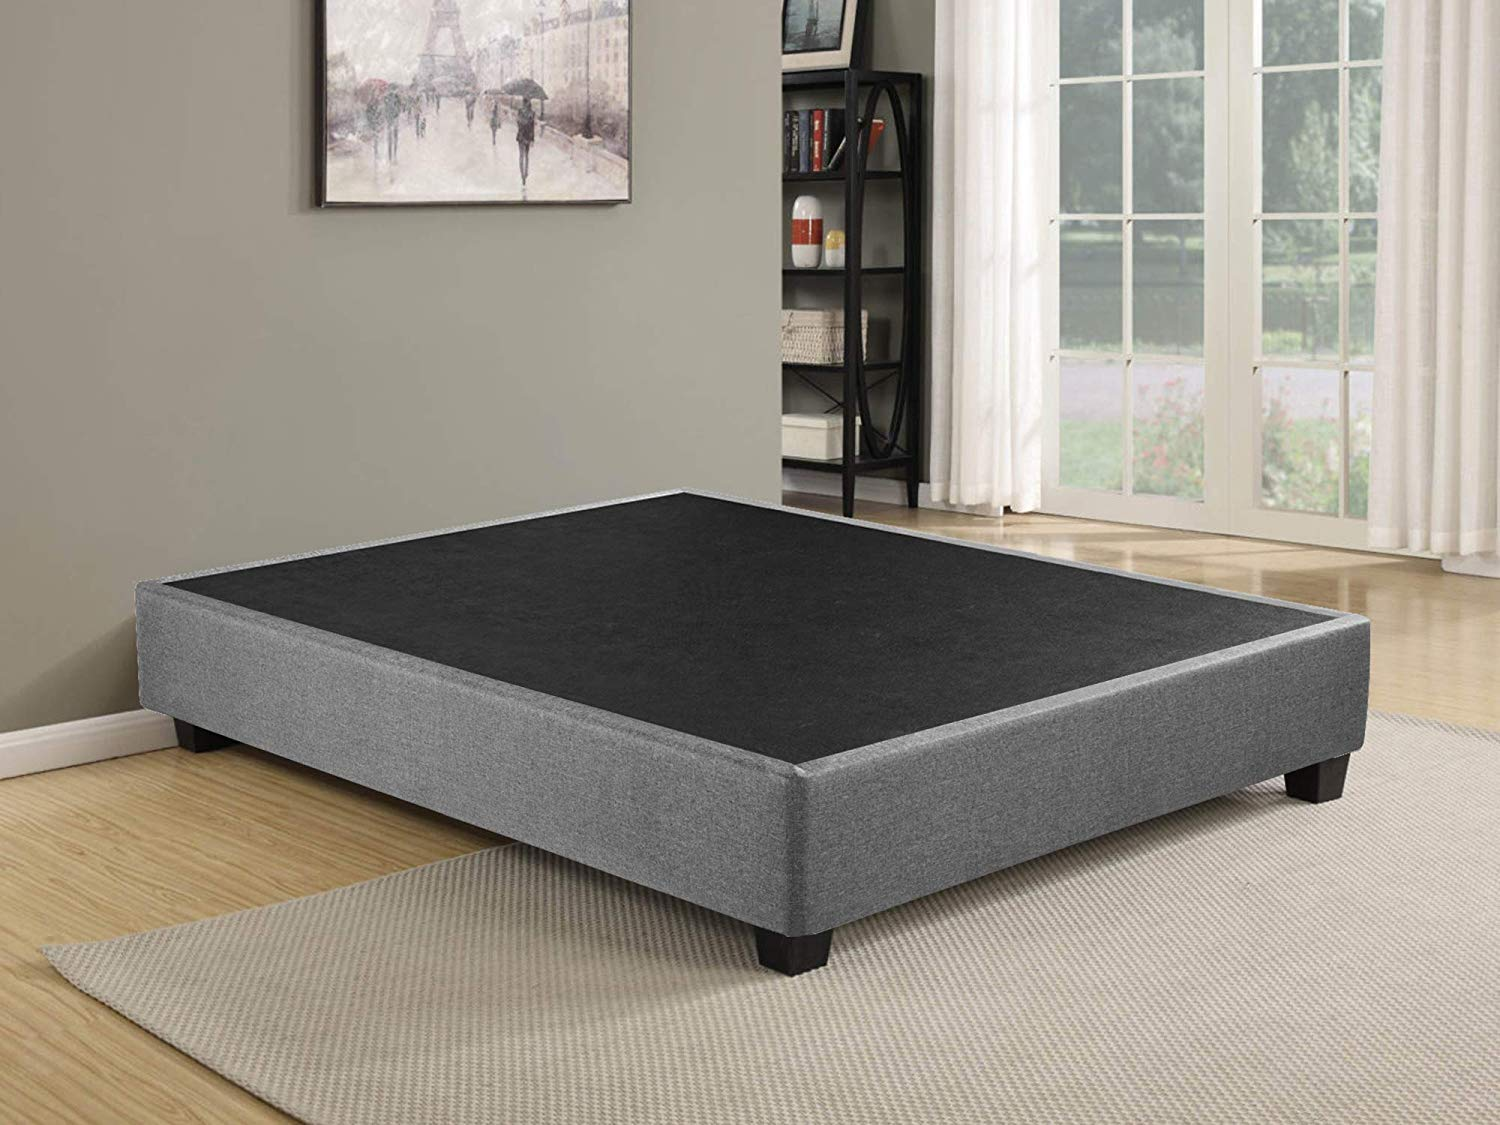 Spring Solution, Platform Bed For Mattress, Eliminates Need Of Box Spring and Bed Frame, Queen size